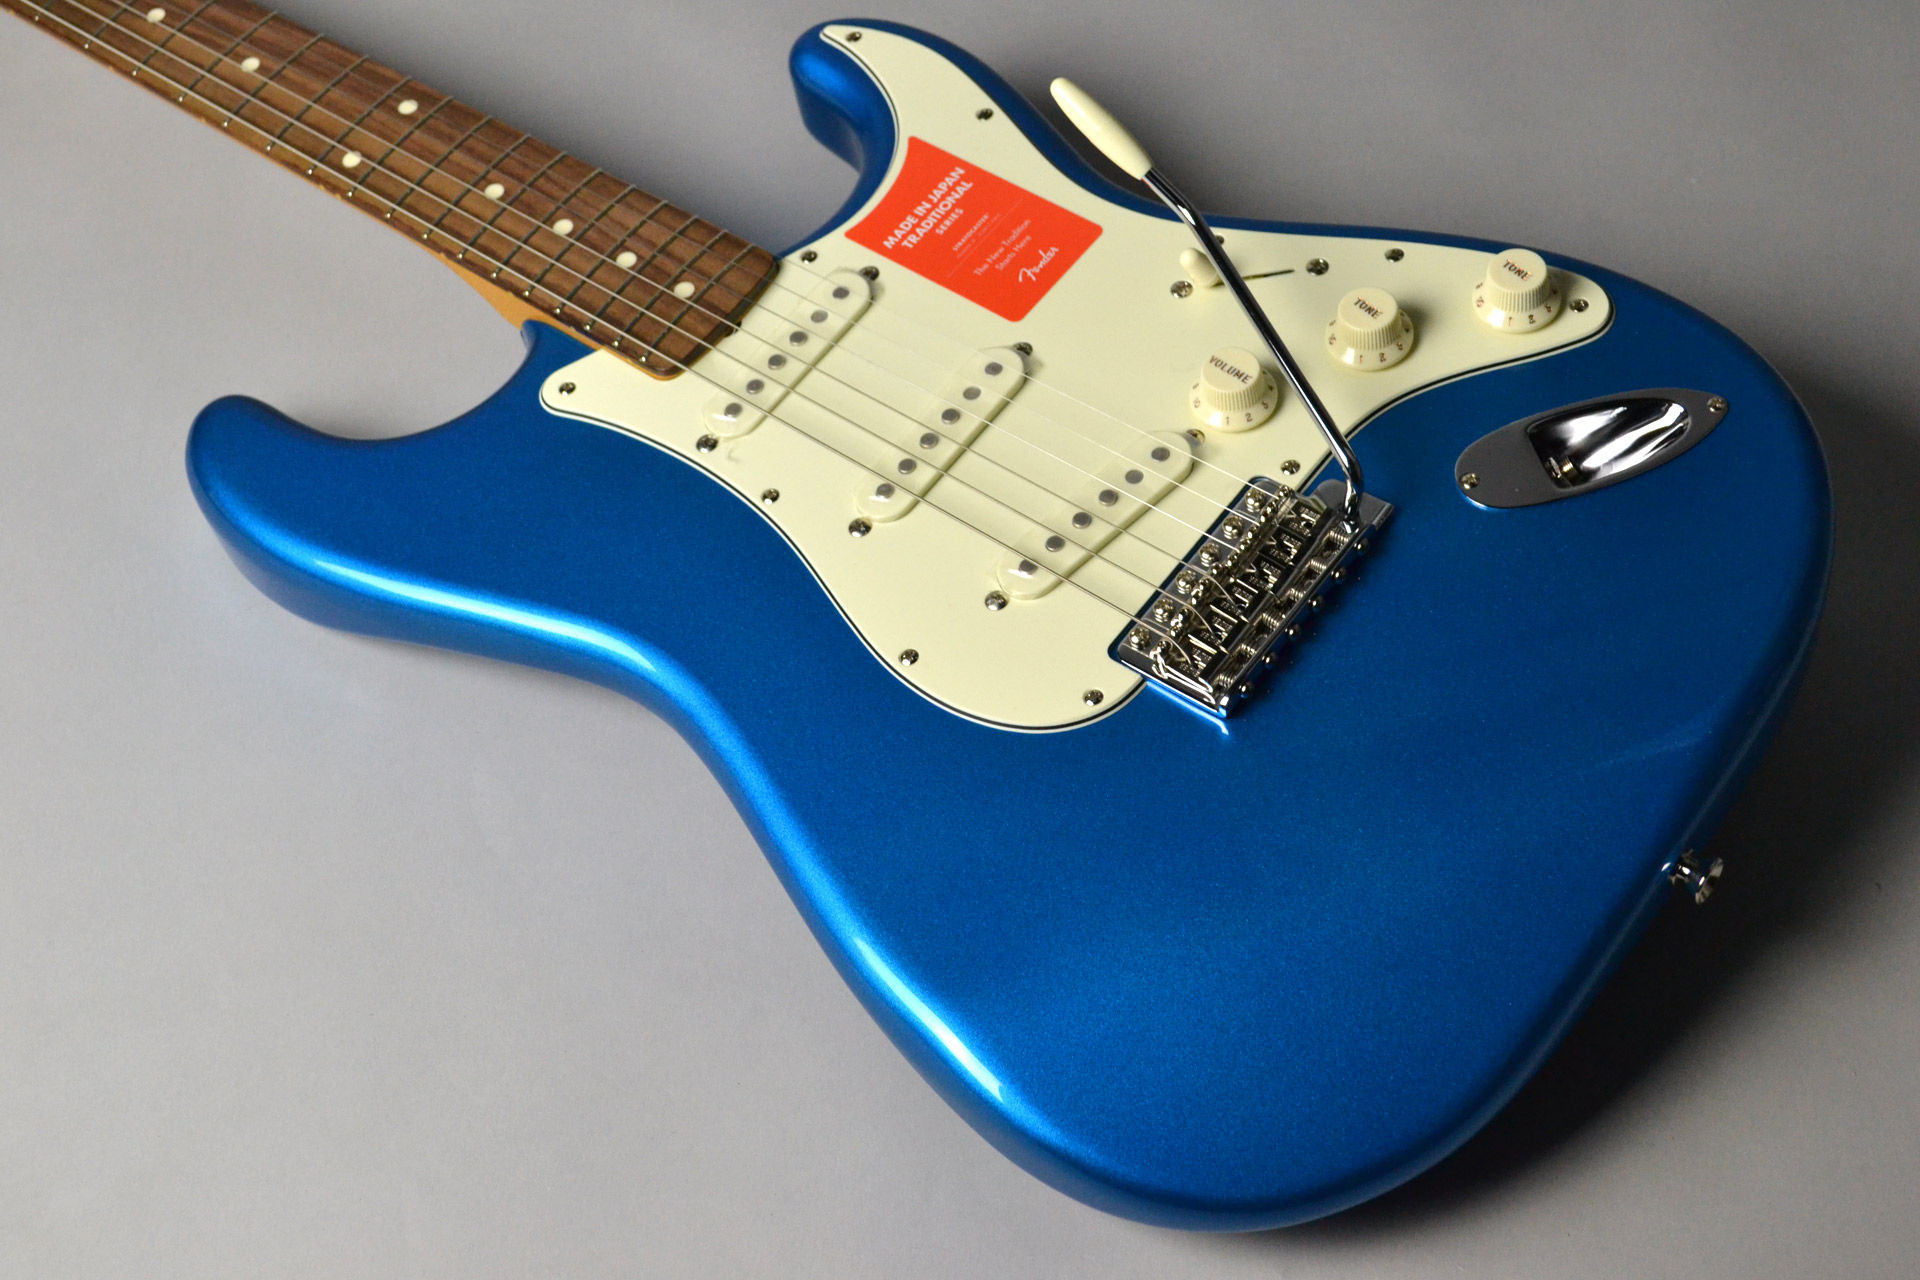 MADE IN JAPAN TRADITIONAL 60S STRATOCASTER Candy Blueの全体画像(縦)